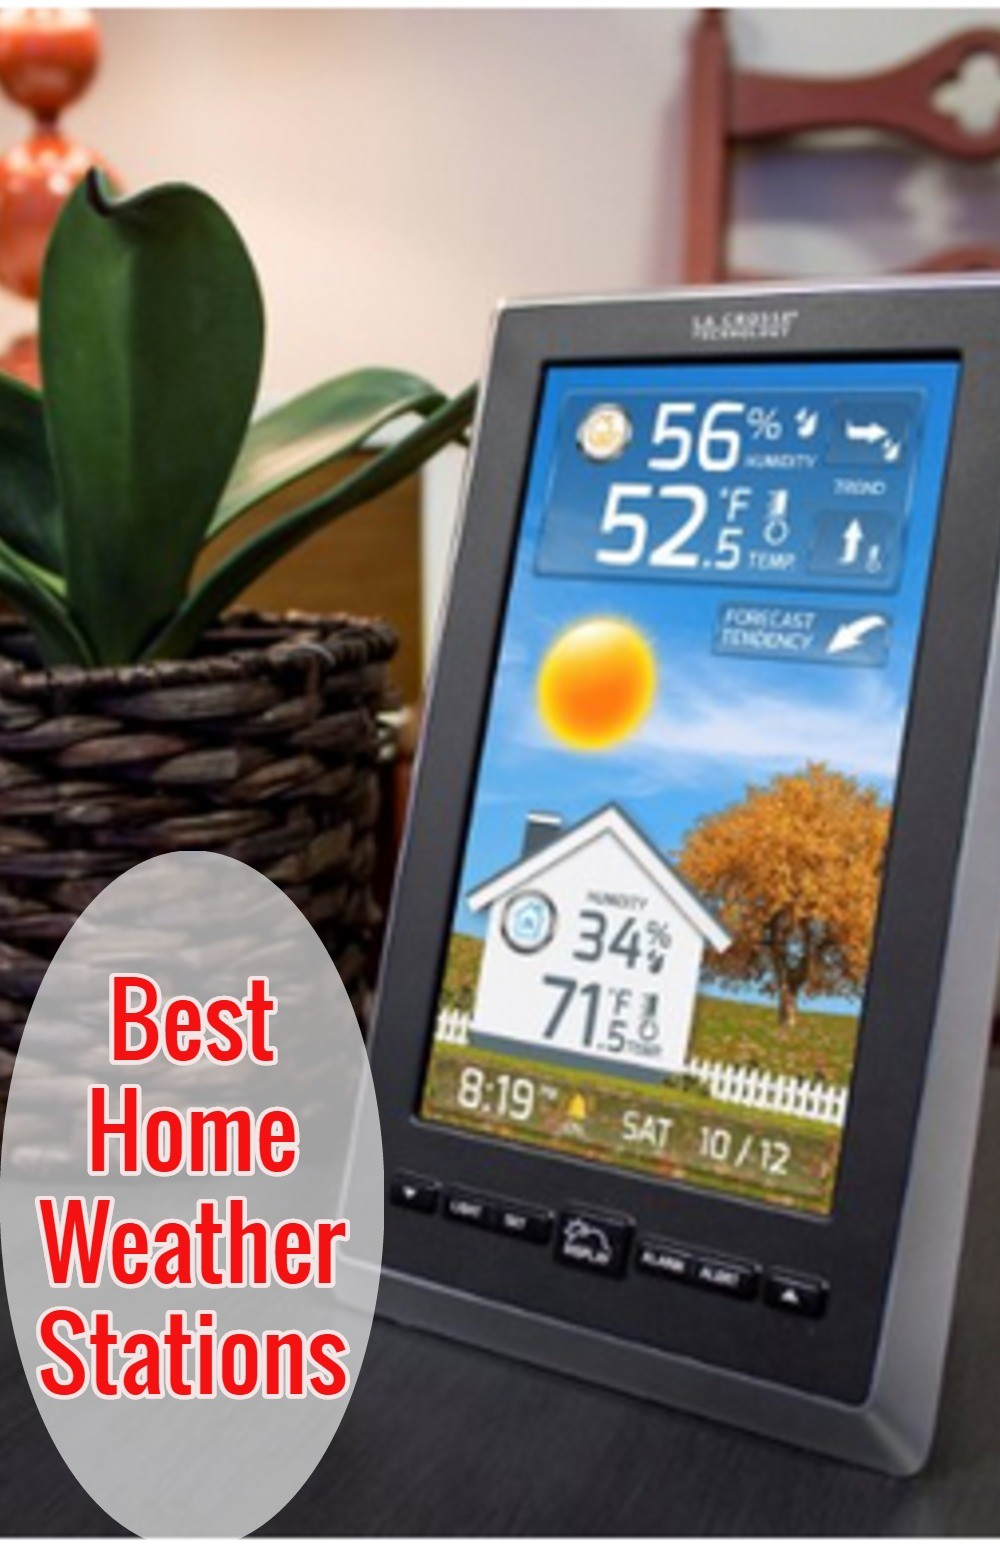 This is a great wireless home weather station. Indoor/outdoor thermometer, weather alerts and weather forecast. Every home should have one of these for bad weather alerts.